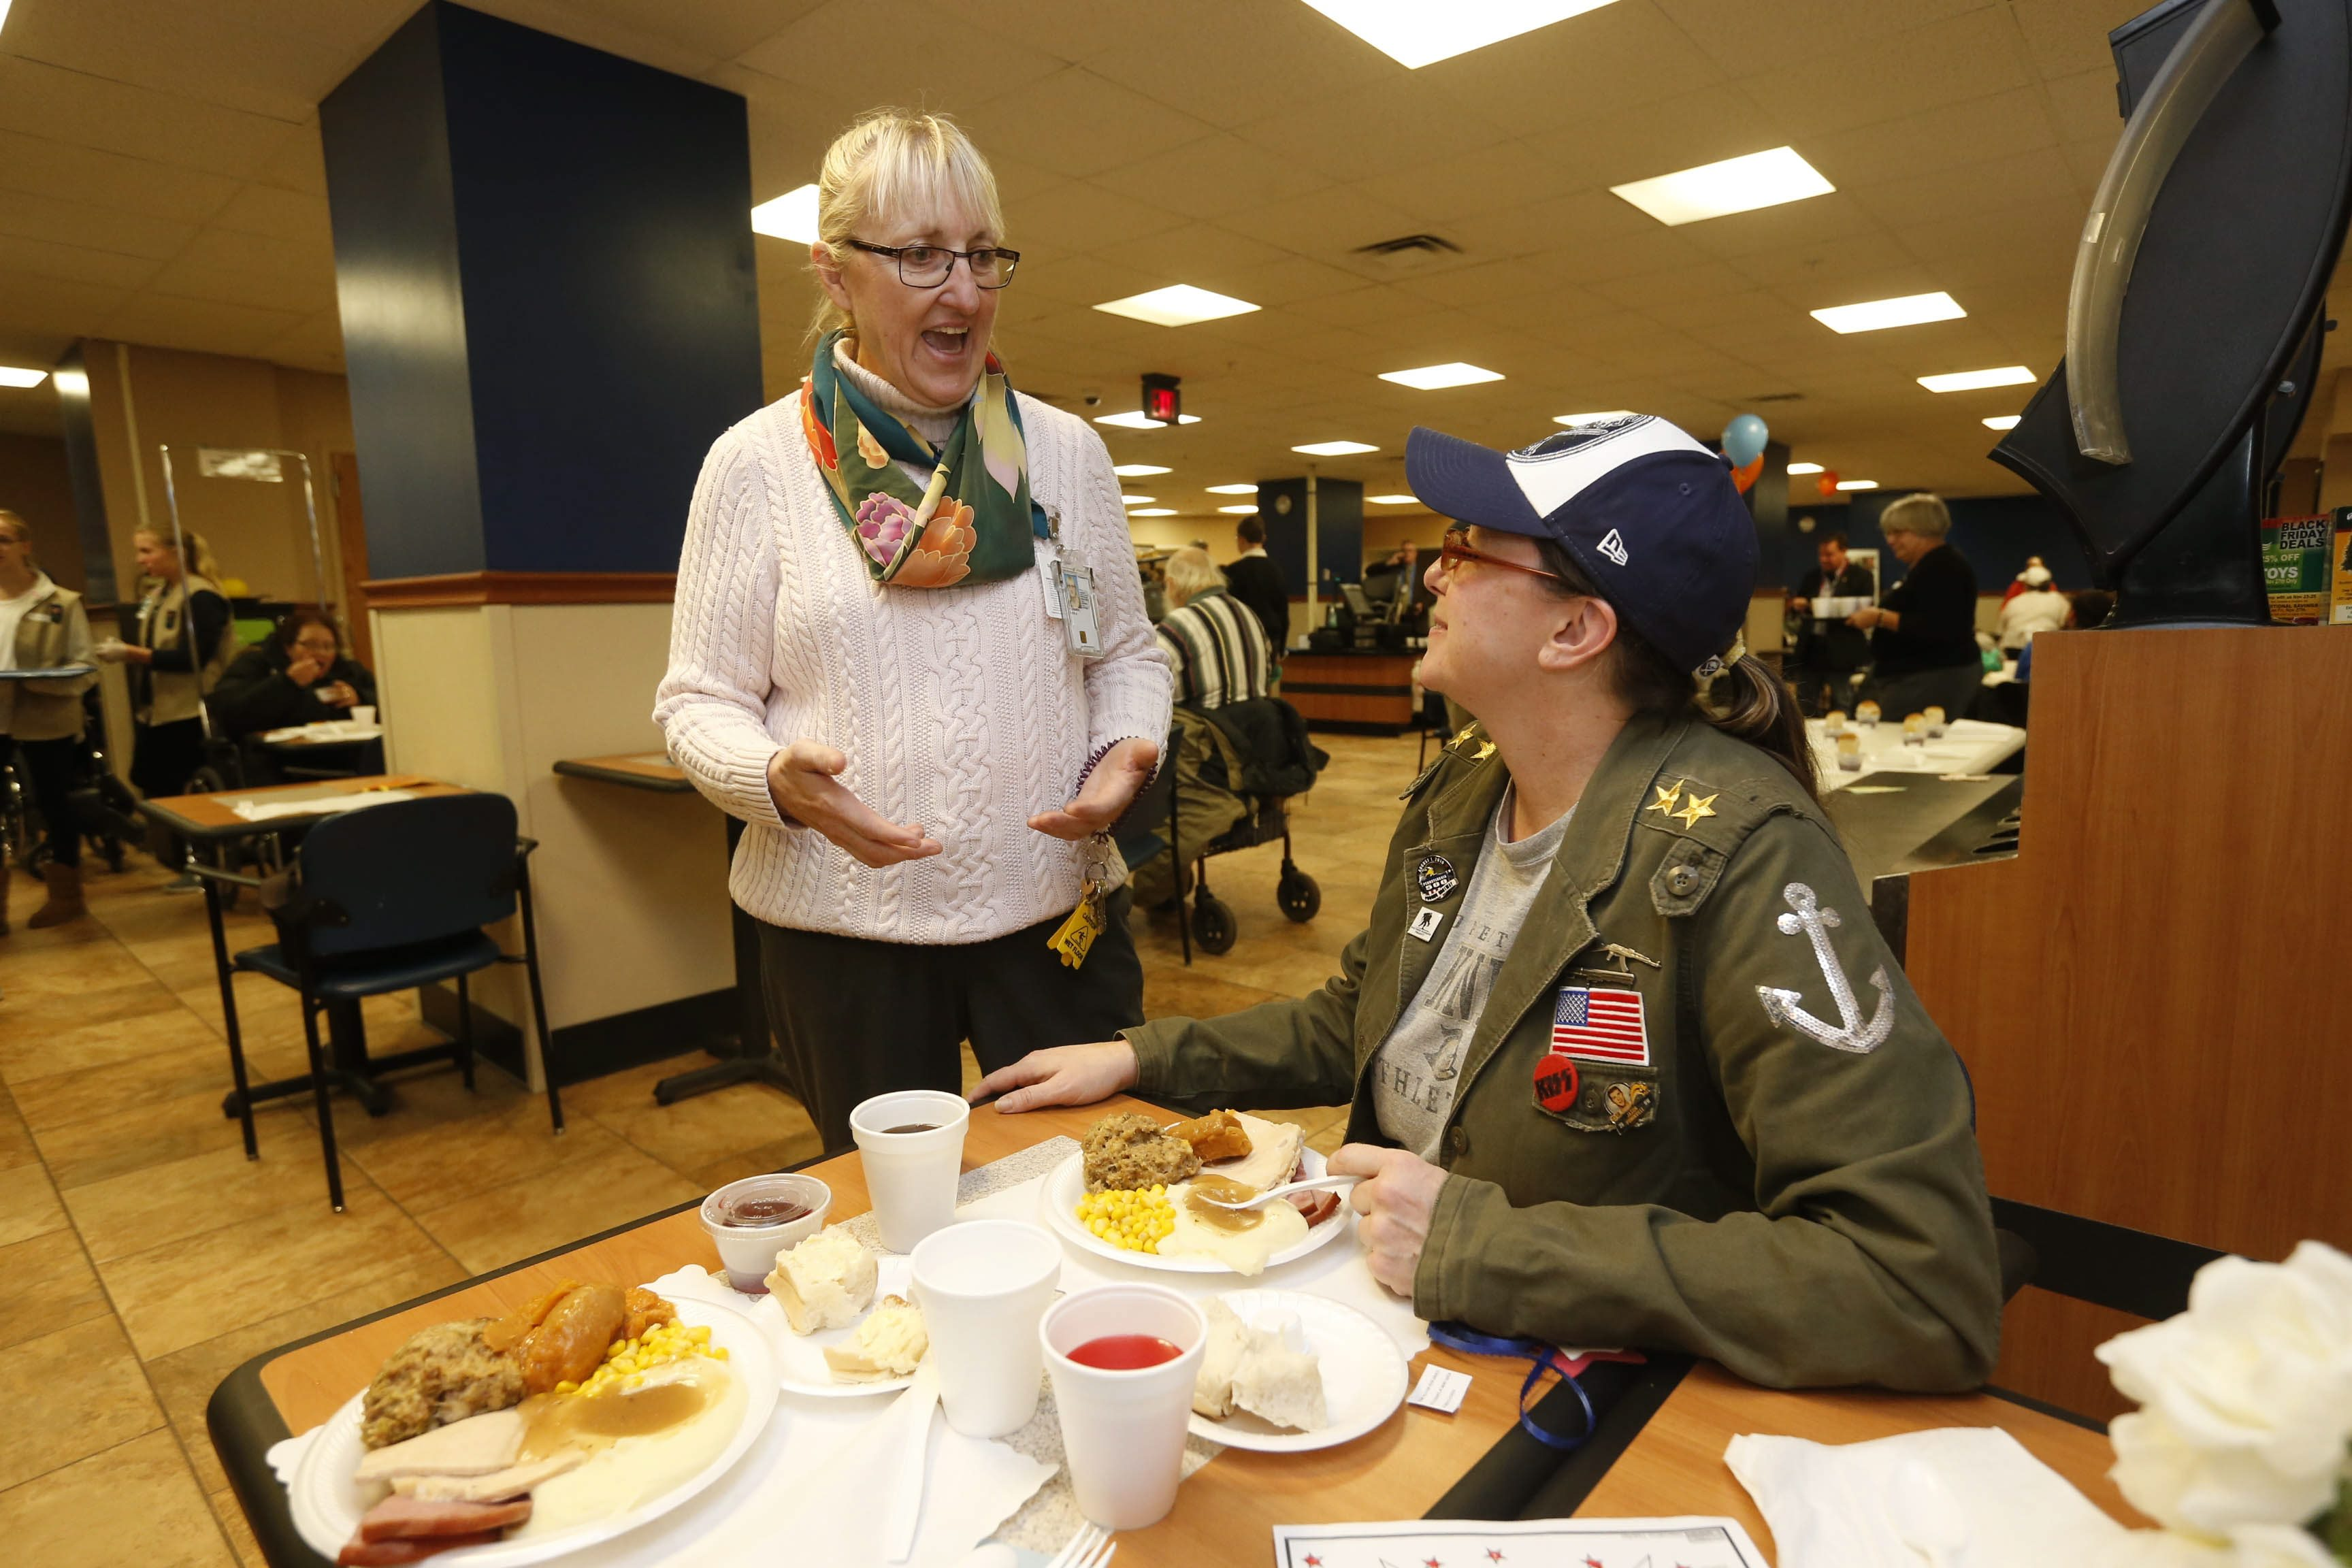 Judith Kaczmarek visits with Elizabeth Demler, a Navy veteran, right, during a Thanksgiving dinner in the cafeteria of the VA Hospital last November. (Robert Kirkham/Buffalo News file photo)